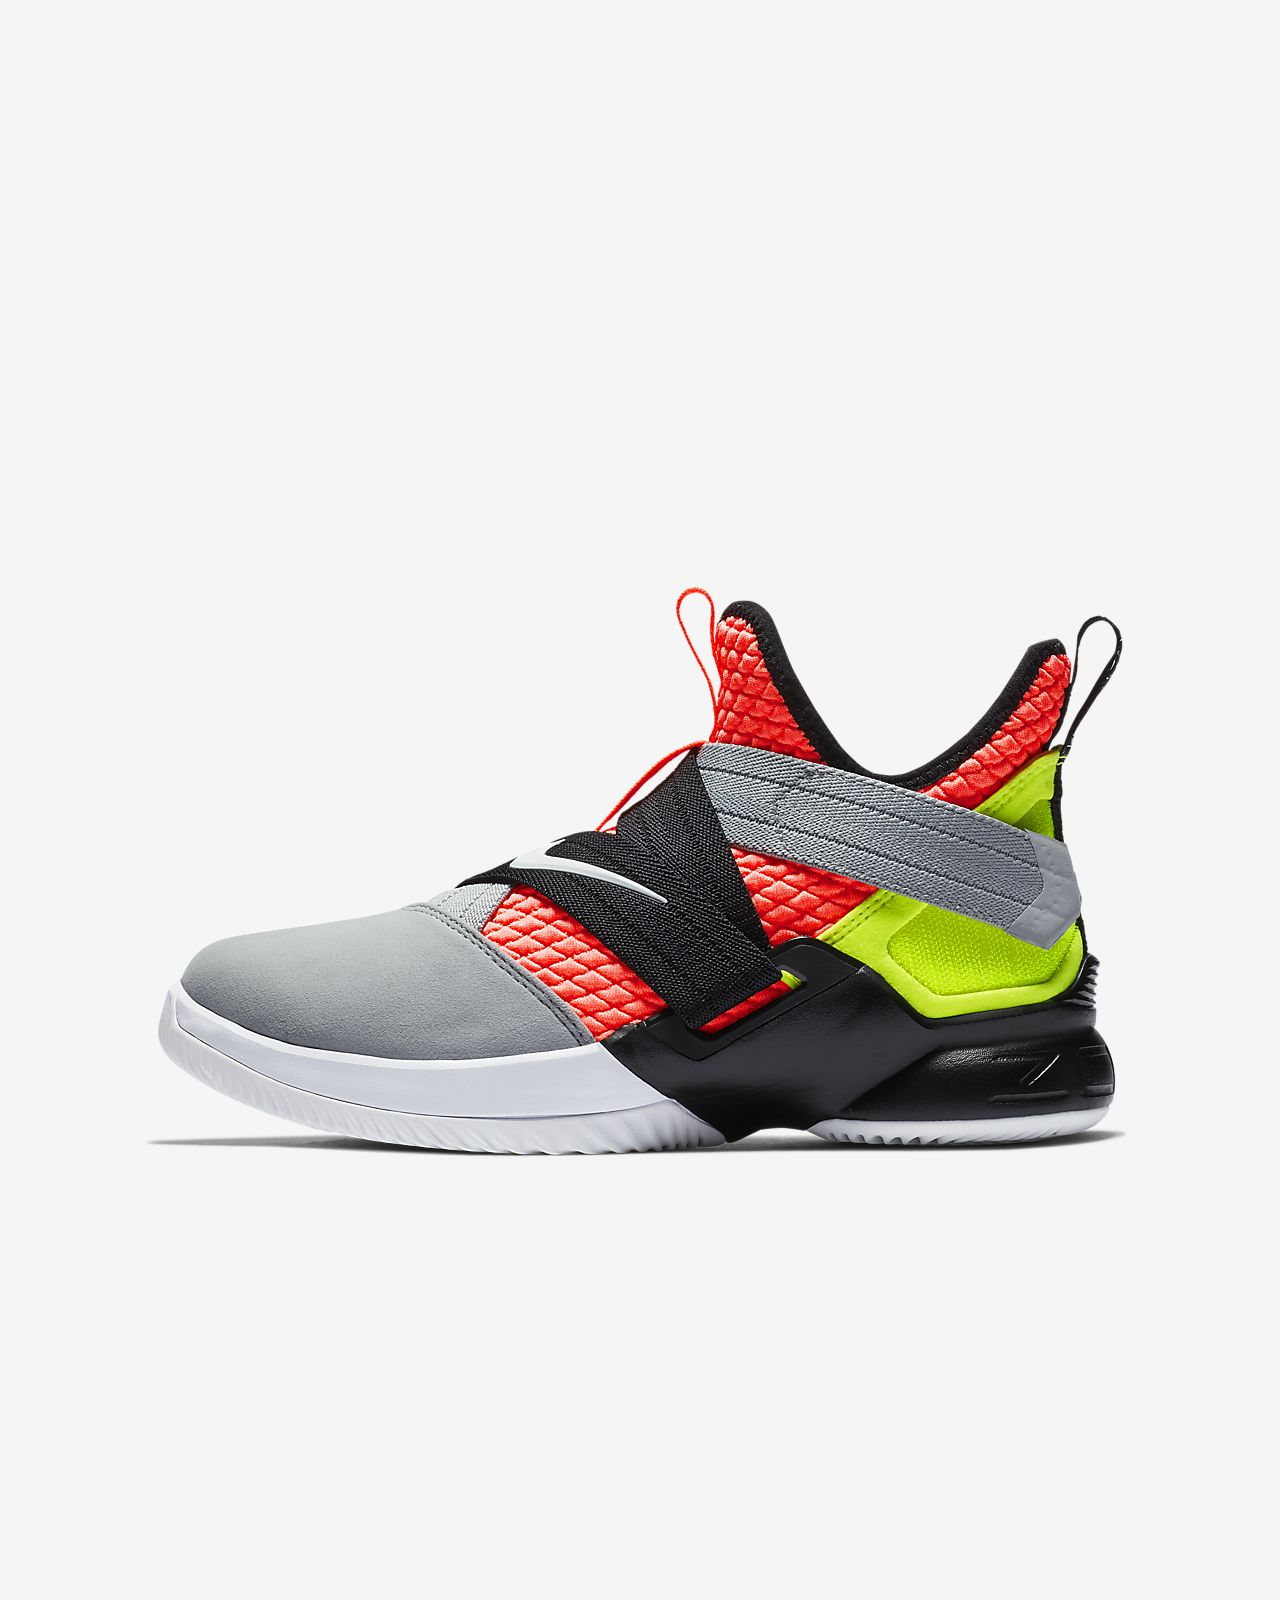 ef9f8b82c91a LeBron Soldier 12 SFG Big Kids  Basketball Shoe. Nike.com